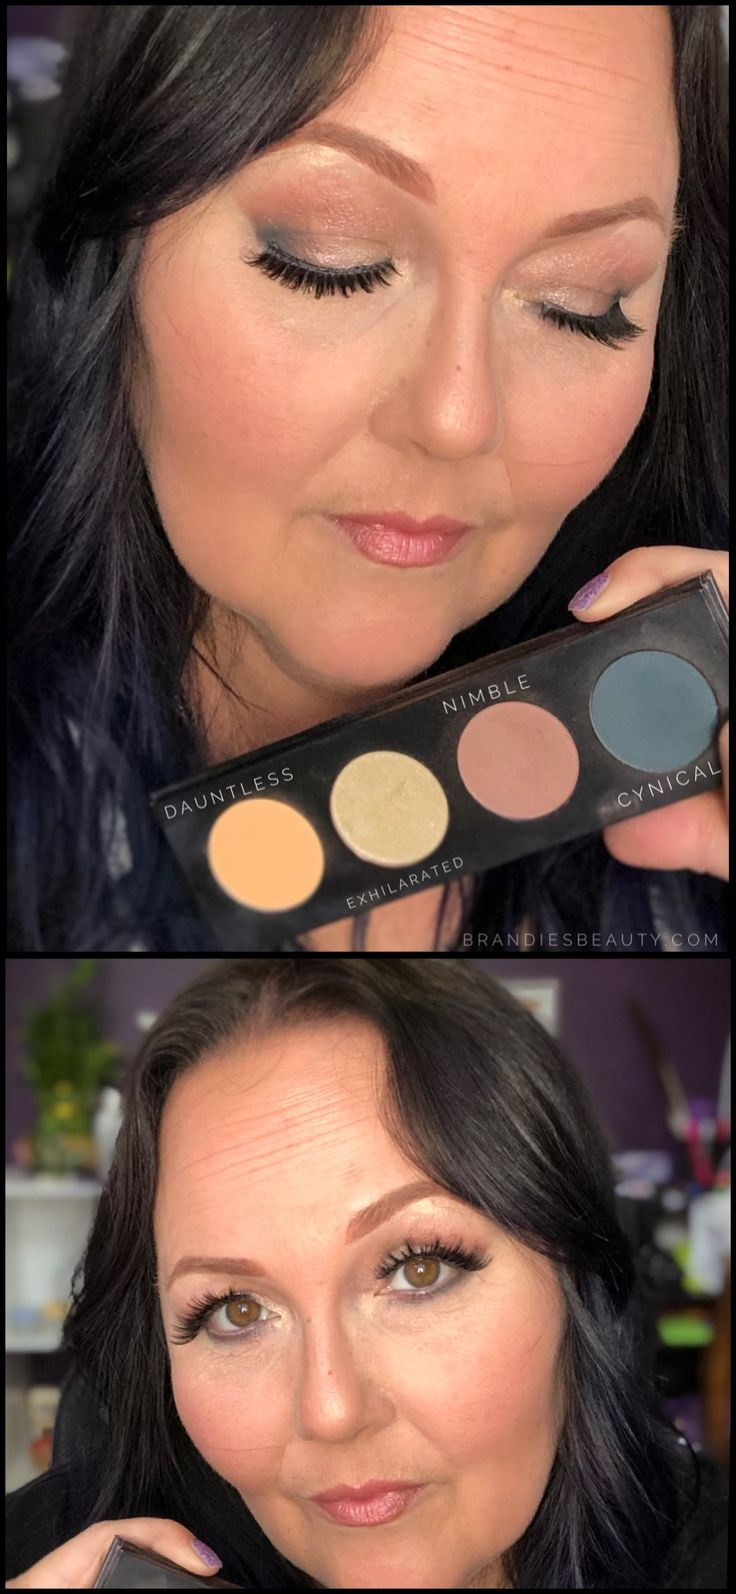 All Shadow Shades On Pic Other Younique Products Used For